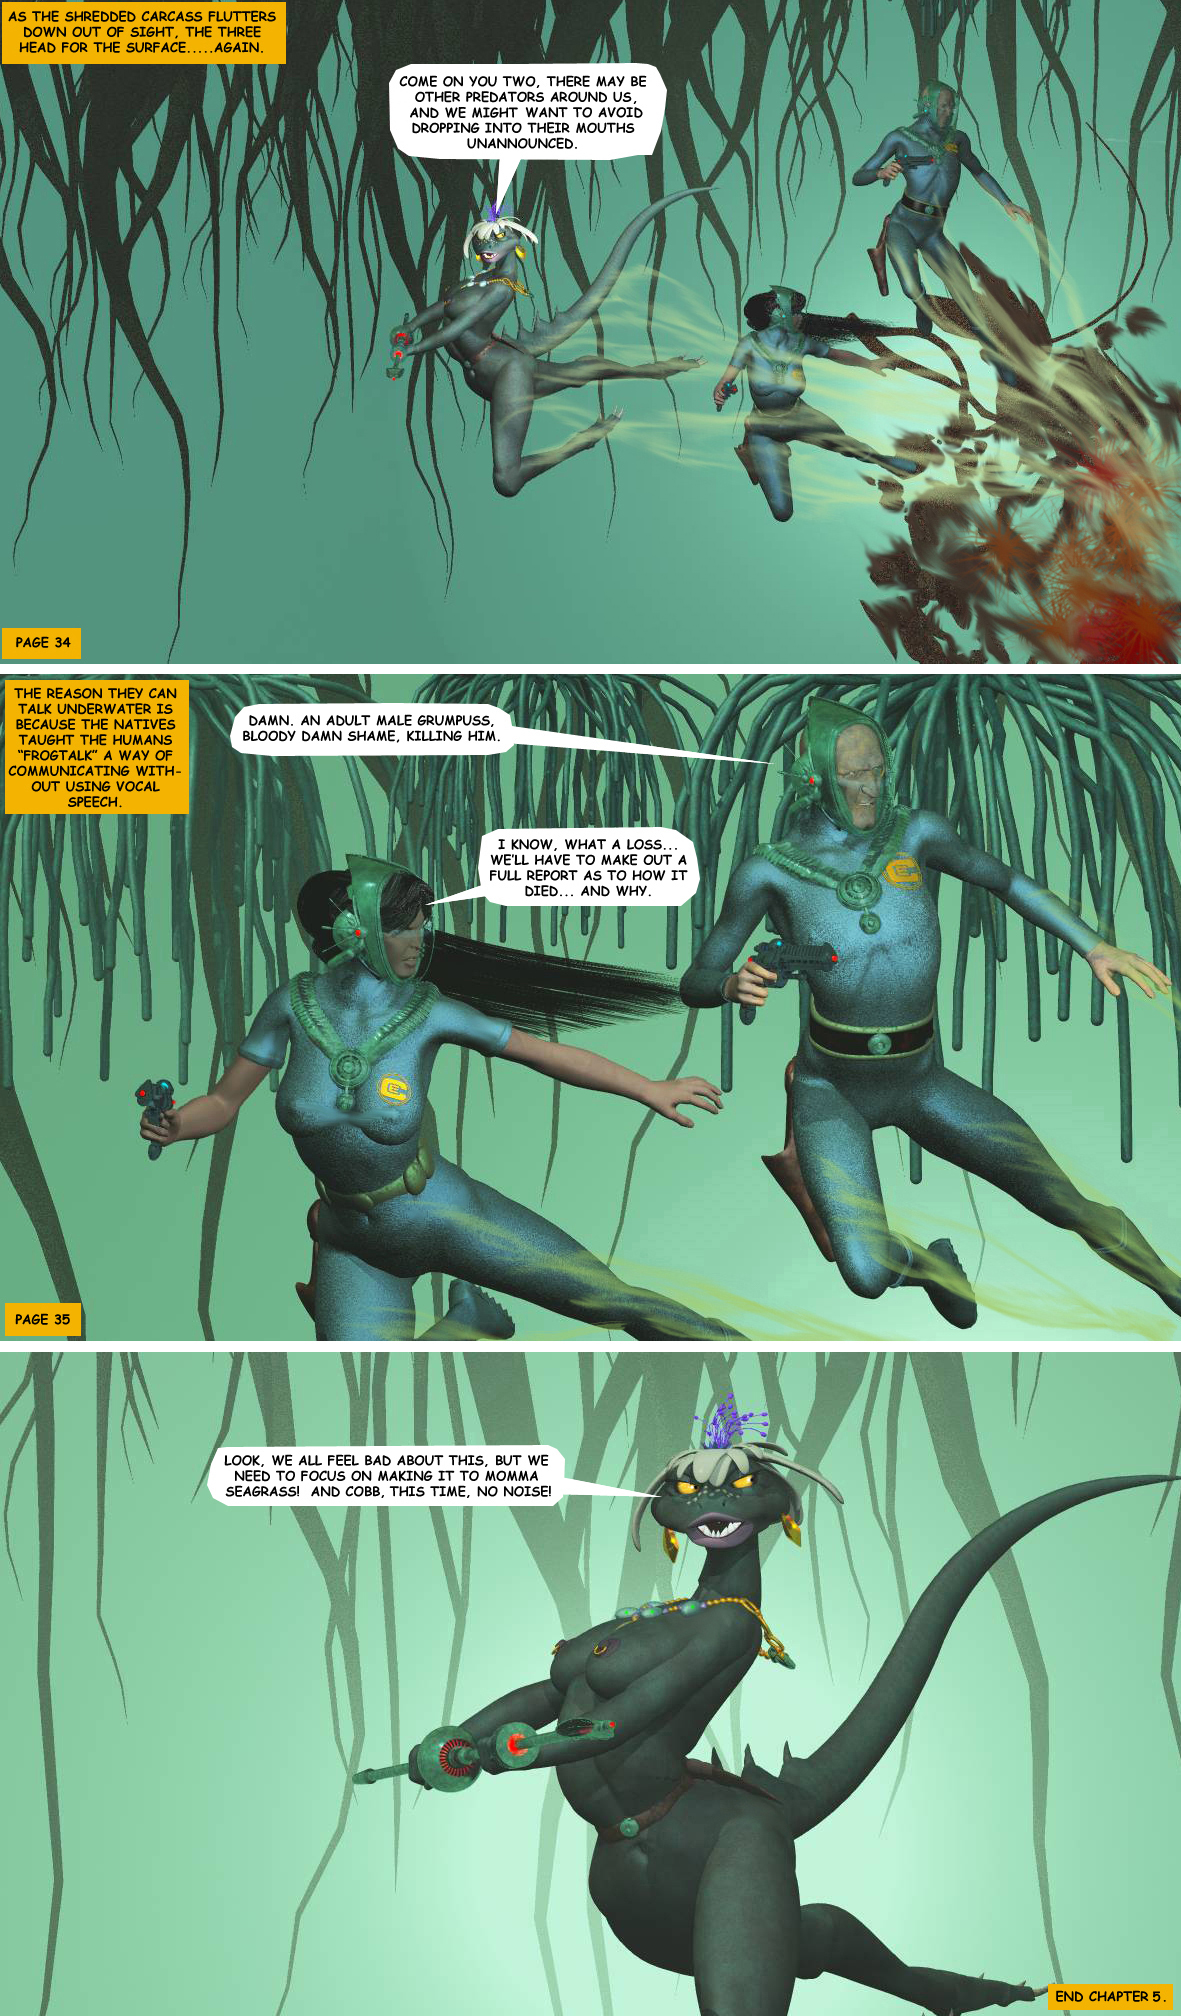 STORM OVER WHOOMERA: PAGE 26